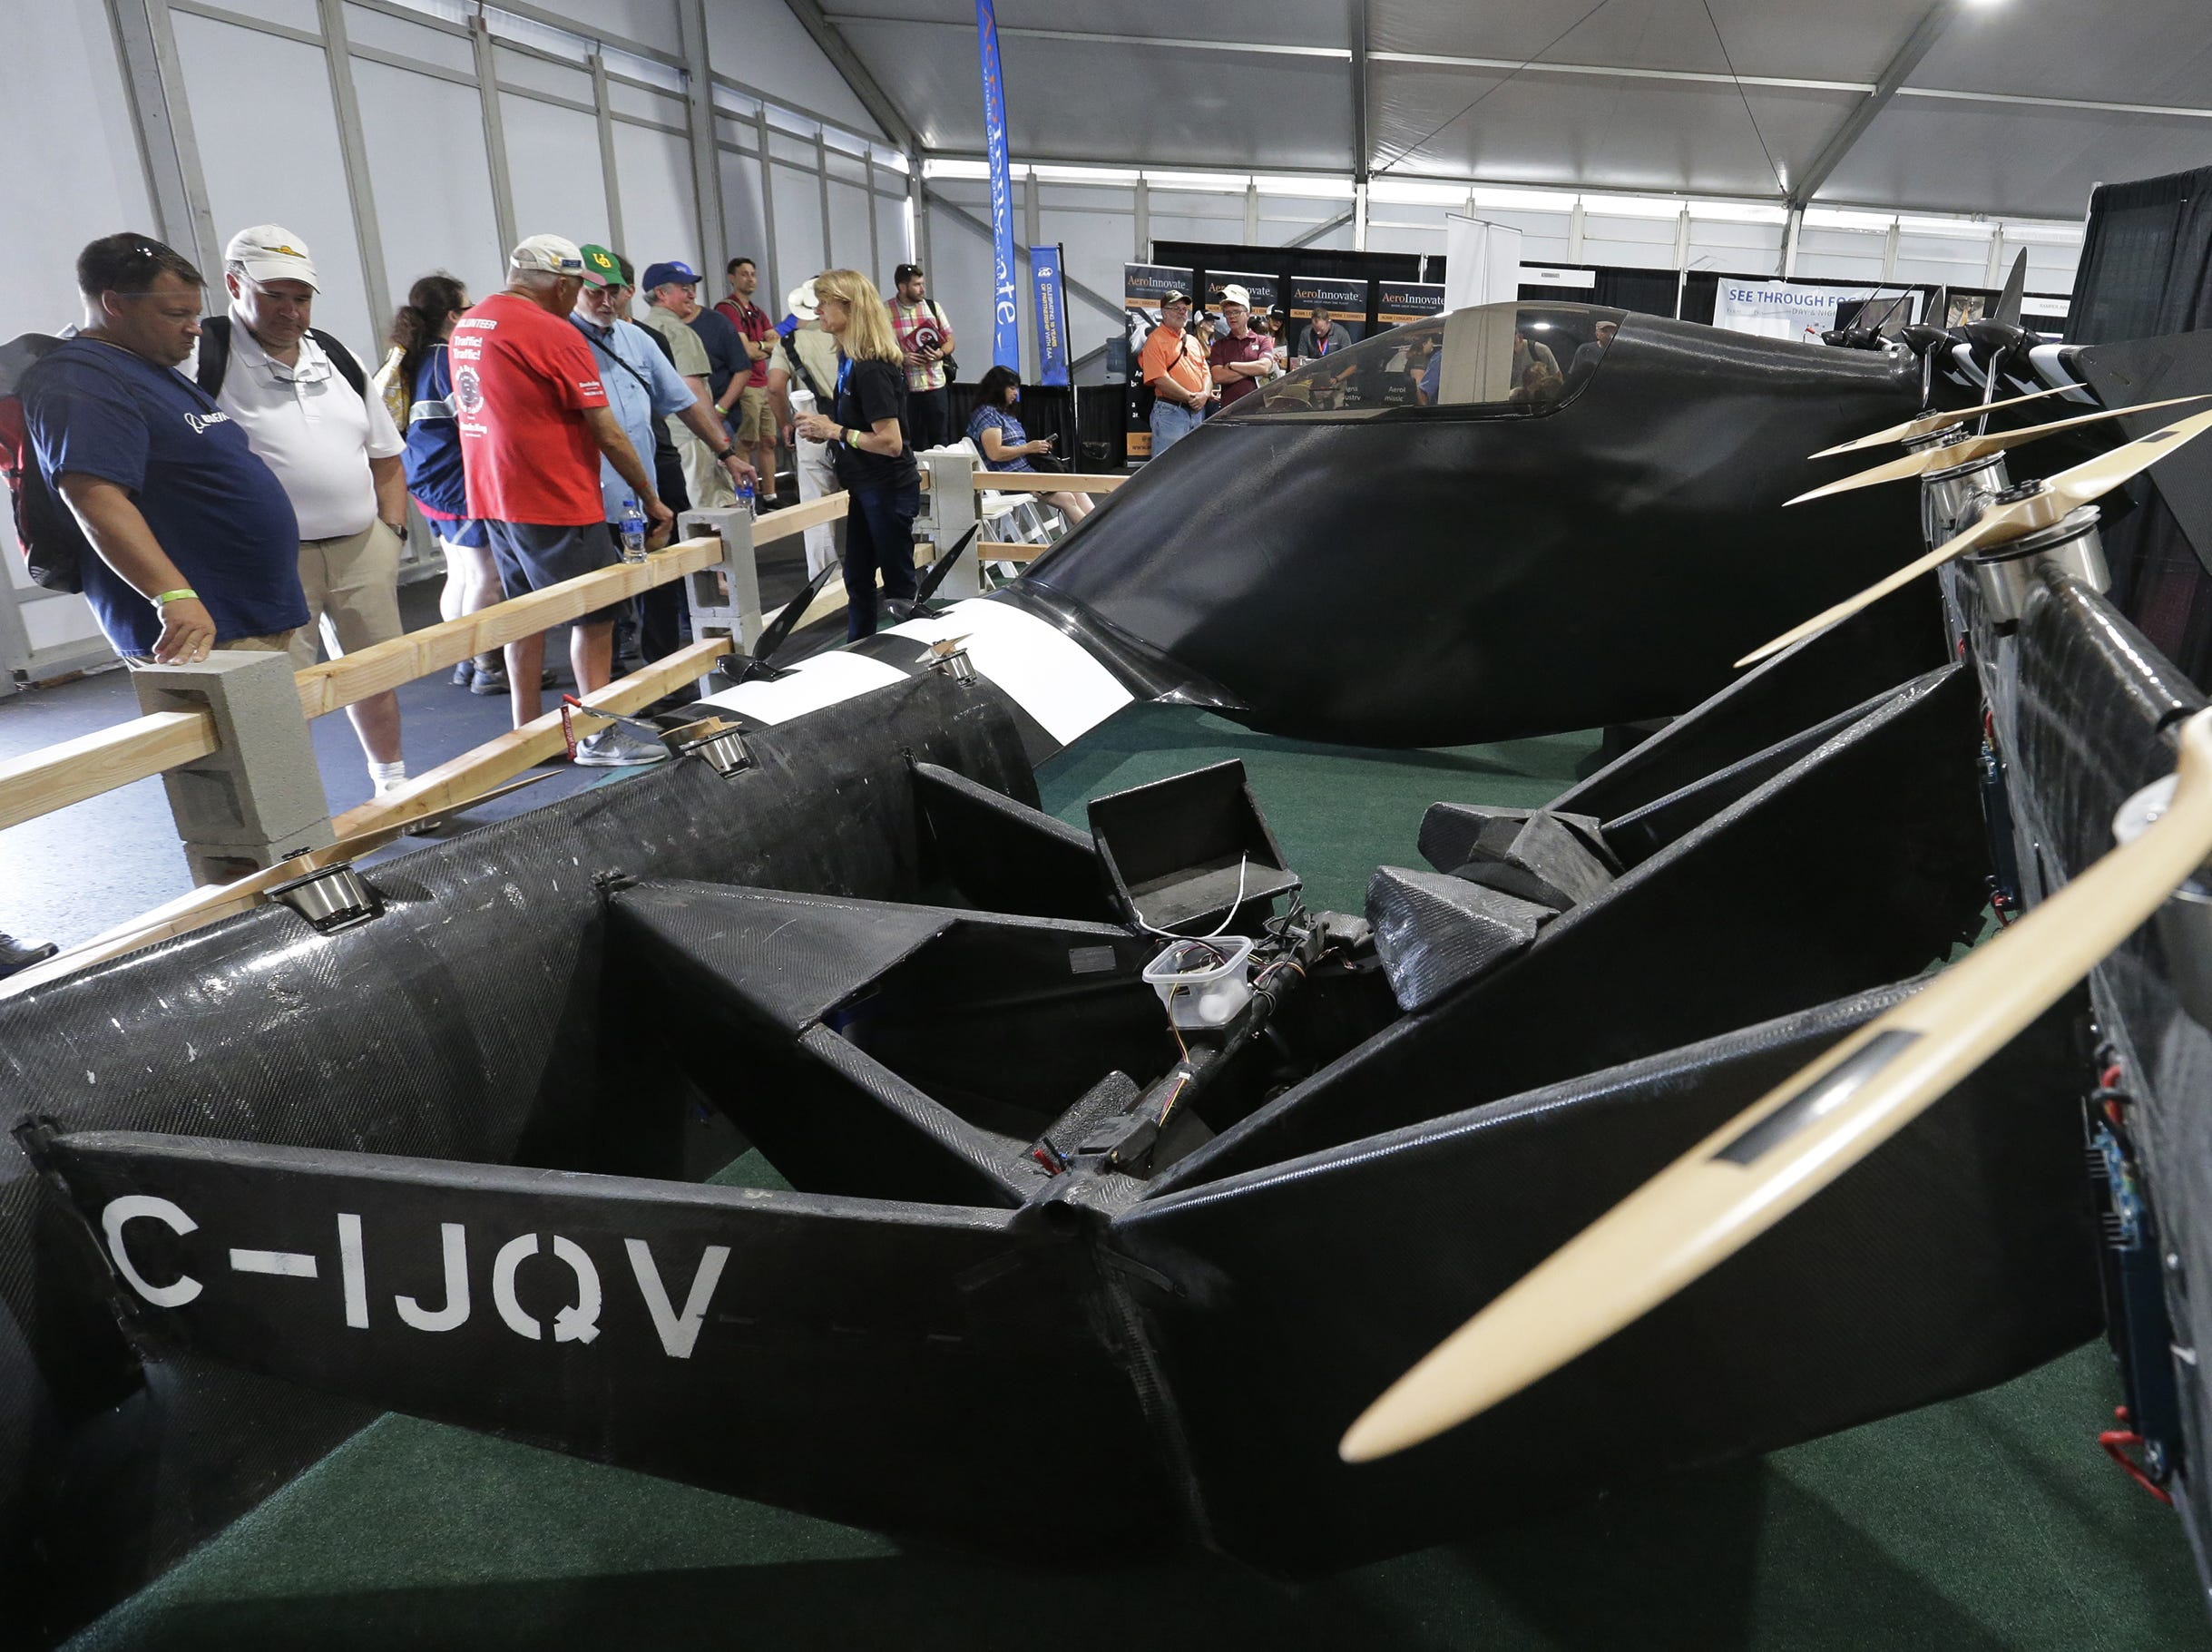 Opener shows off its BlackFly flying car.  Based in Palo Alto, California showcased their flying cars, Tuesday, July 24, 2018, in Oshkosh, Wis.  The 66th annual Experimental Aircraft Association Fly-In Convention, AirVenture 2018 draws over 500,000 people annually to the area.  The convention runs through July 29. Joe Sienkiewicz/USA Today NETWORK-Wisconsin